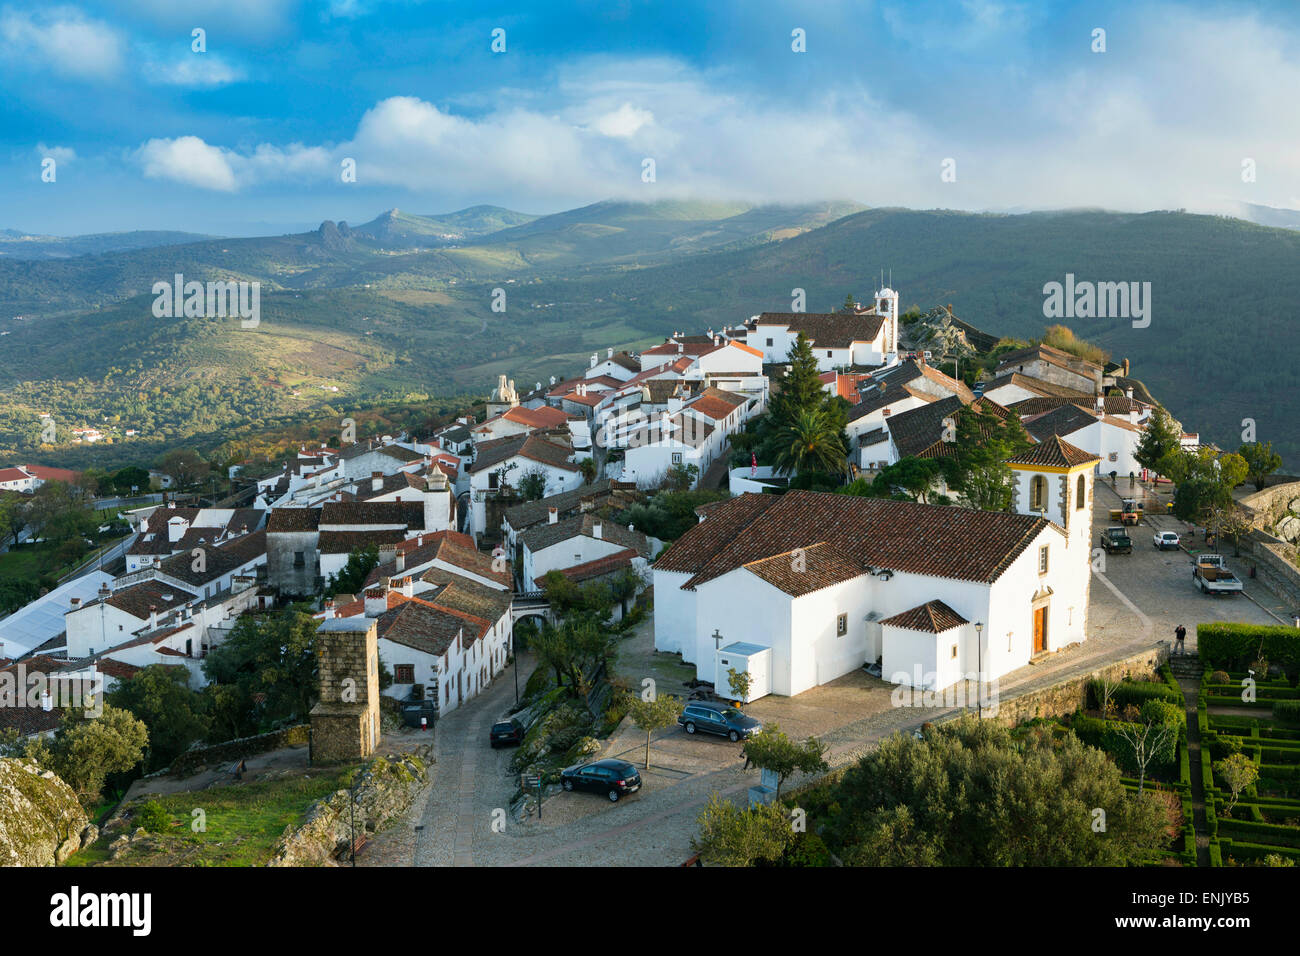 The 15th century parish church and medieval town castle with the Serra de Sao Mamede mountains, Marvao, Alentejo, - Stock Image